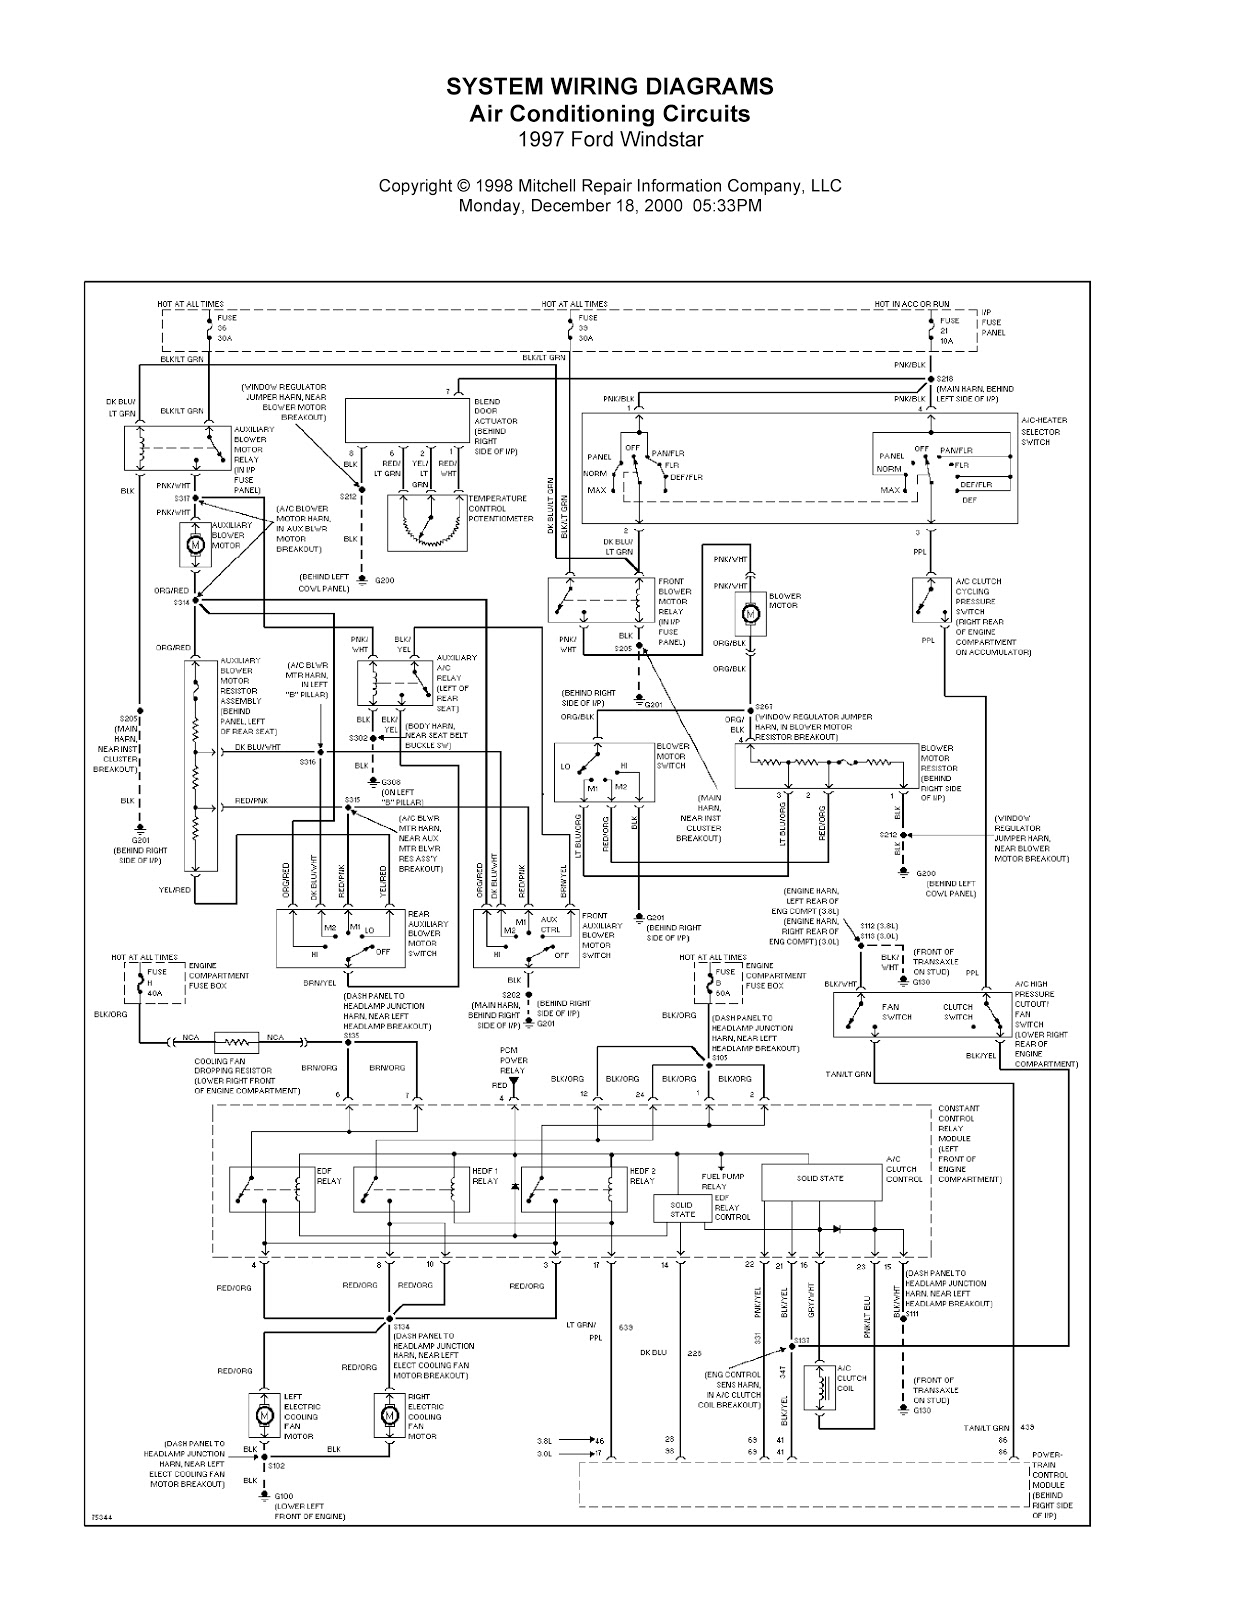 1997 ford windstar complete system wiring diagrams wiring diagrams rh wiringdiagramsolution blogspot com 97 ford windstar fuse box diagram 1997 ford windstar radio wiring diagram